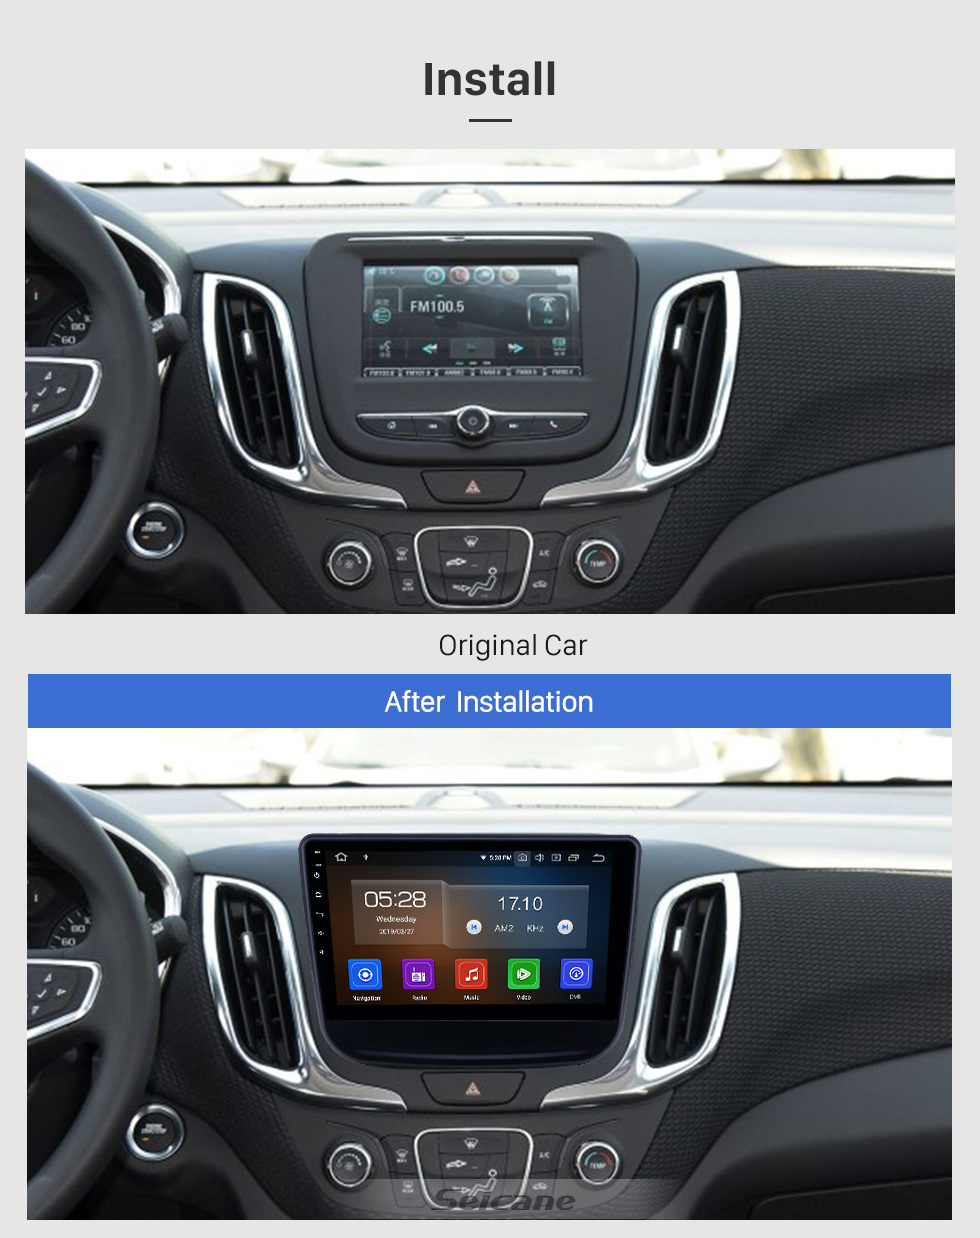 Seicane 10.1 inch Android 9.0 Radio for 2016-2018 chevy Chevrolet Equinox Bluetooth Touchscreen GPS Navigation Carplay support TPMS DAB+